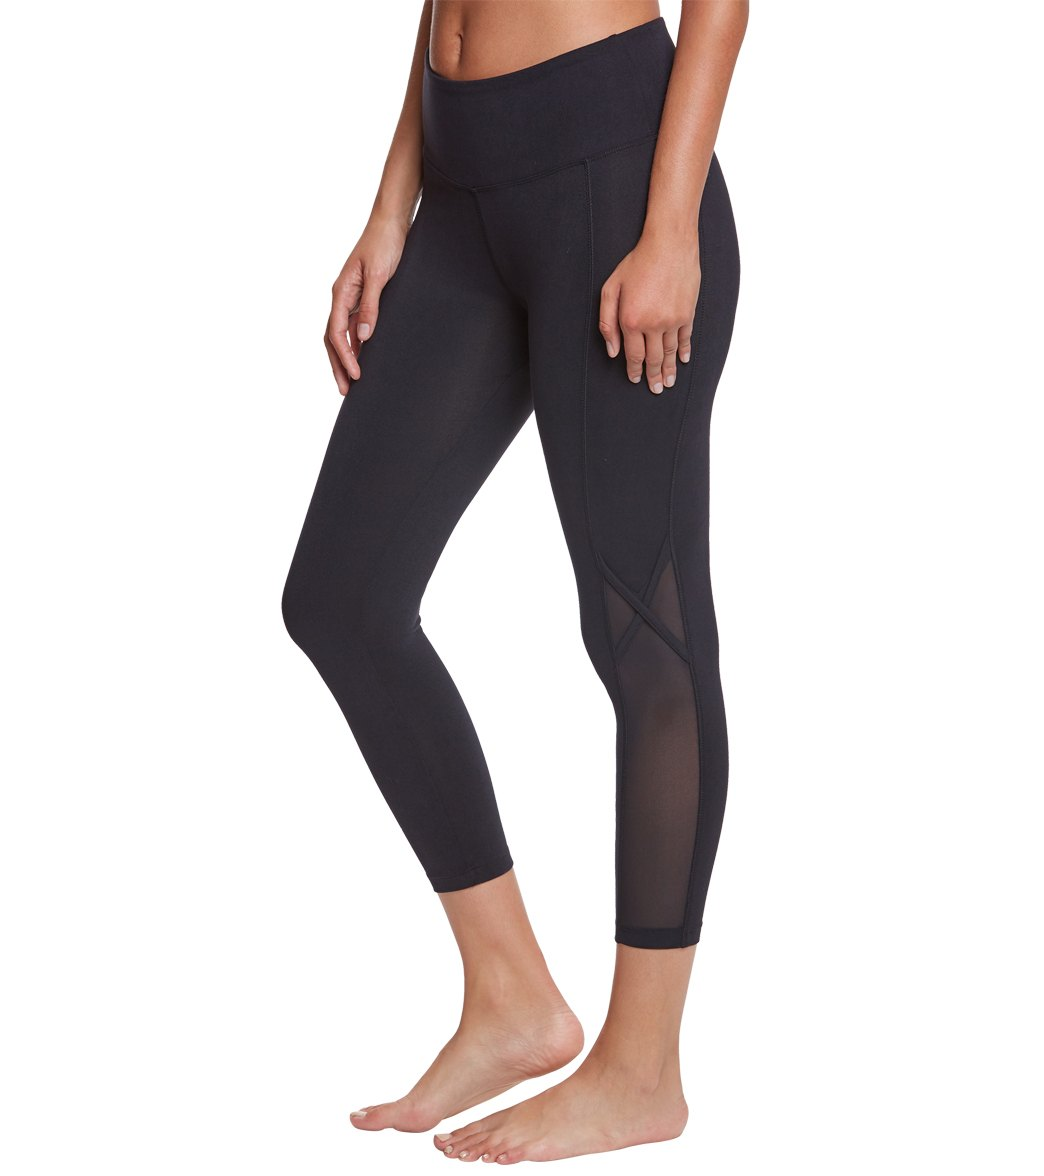 5bf1f4fb923b43 Balance Collection Britney High Waisted Yoga Capris at YogaOutlet.com -  Free Shipping